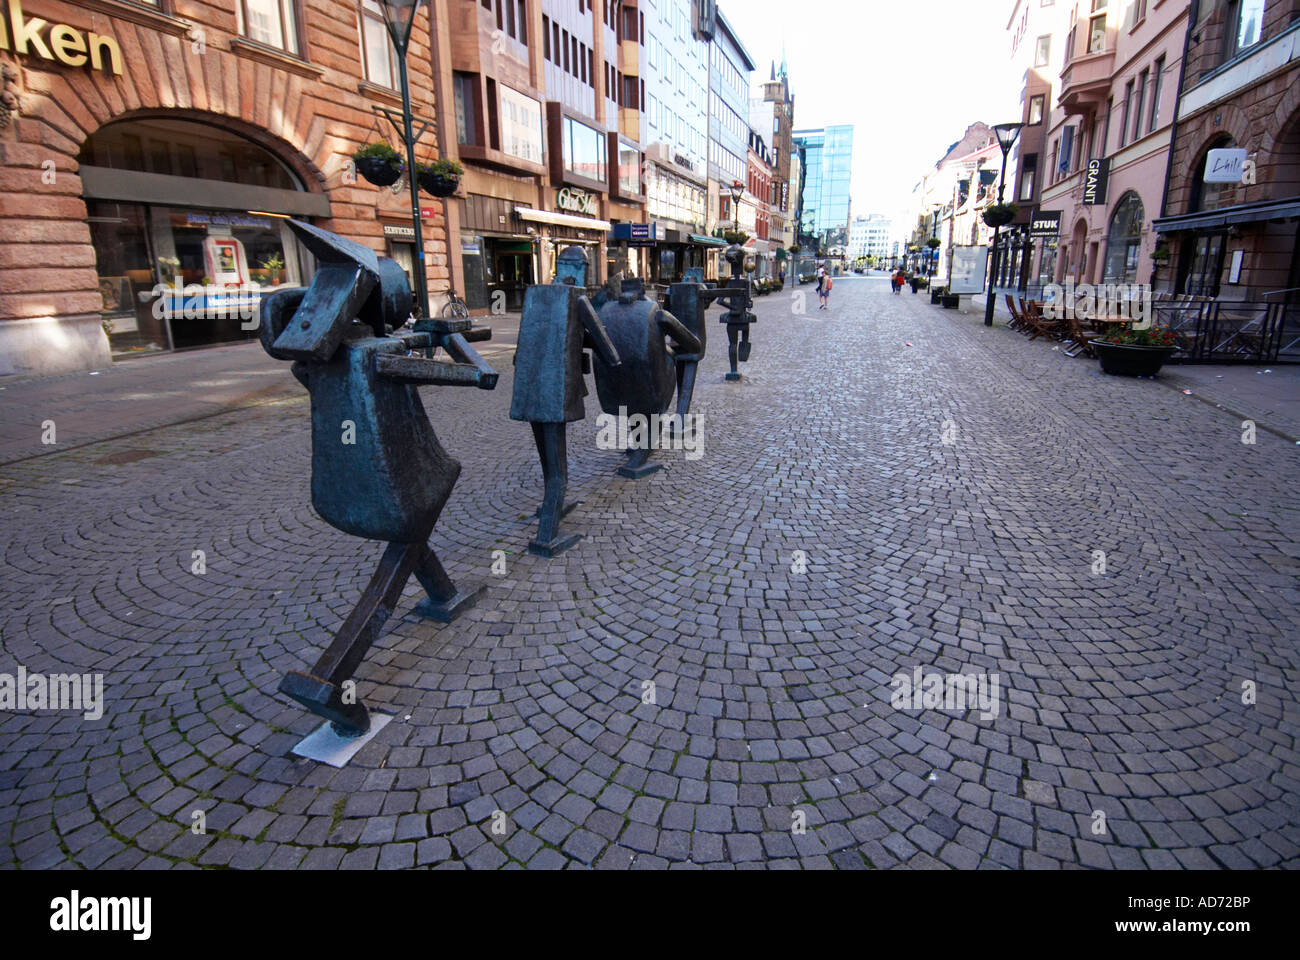 Sculpture of orchestra in Malmö by artist Yngve Lundell - Stock Image